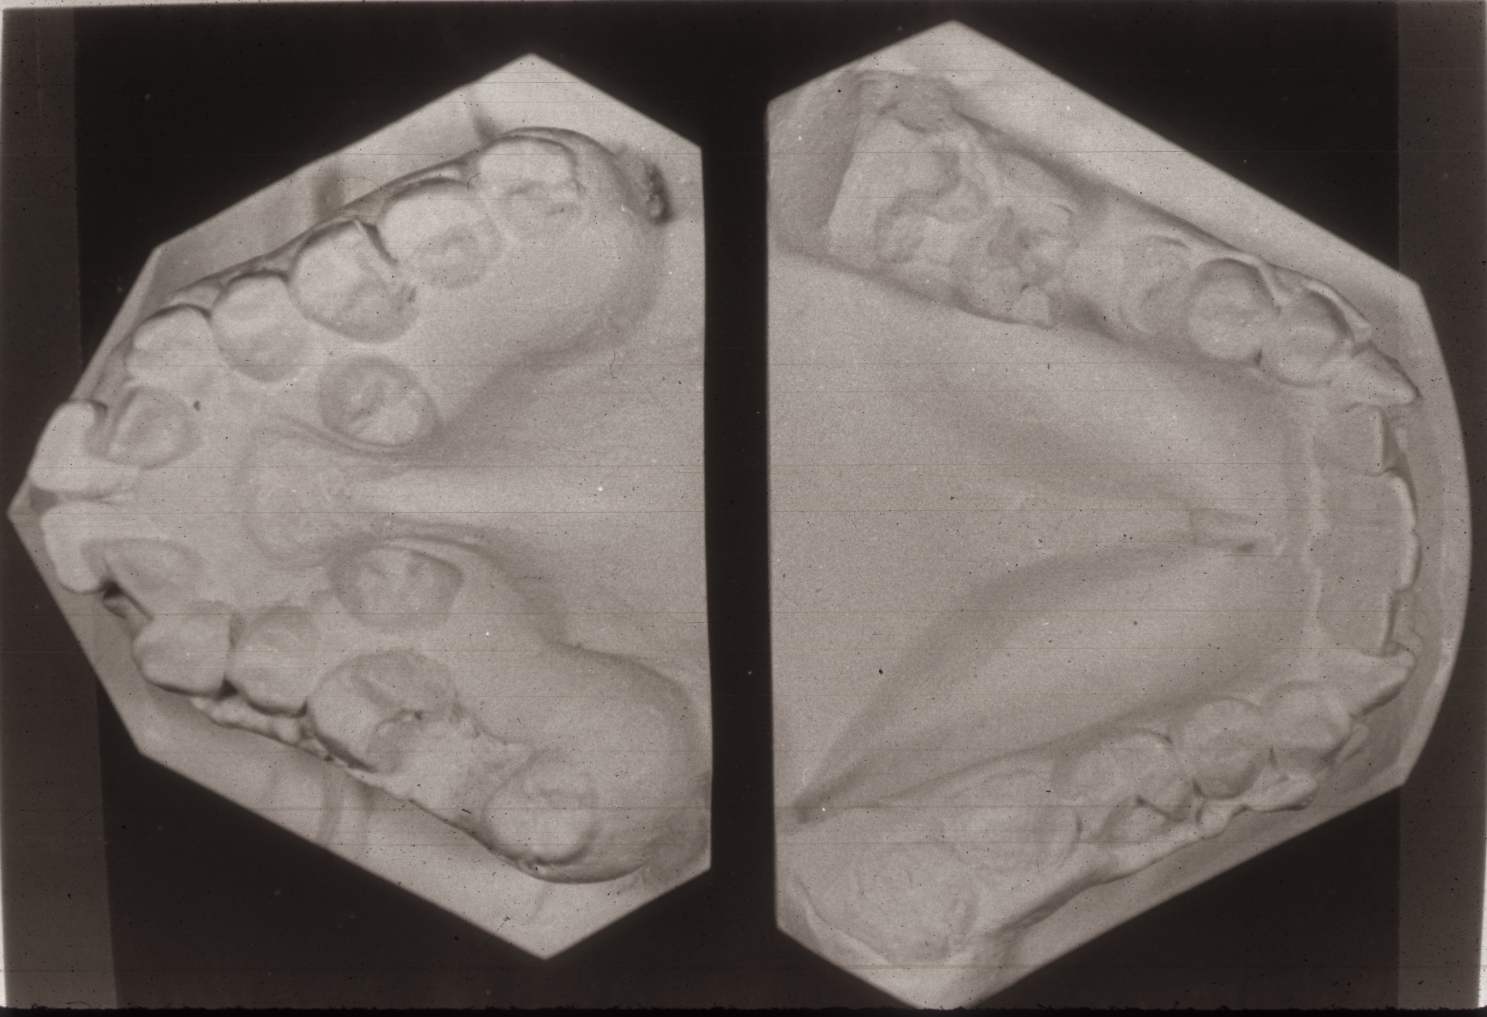 Dental cast of teeth in Crouzon Syndrome